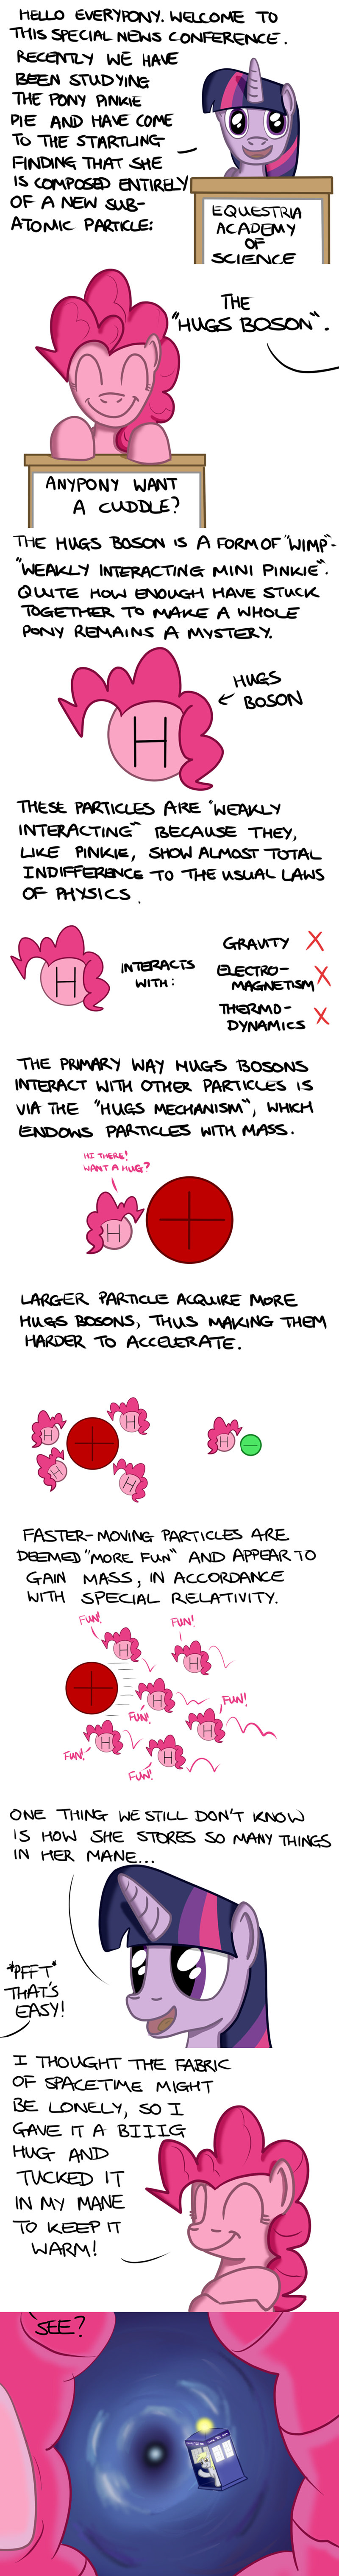 higgs boson derpy hooves twilight sparkle pinkie pie doctor who comic science hoofclid - 9060380416